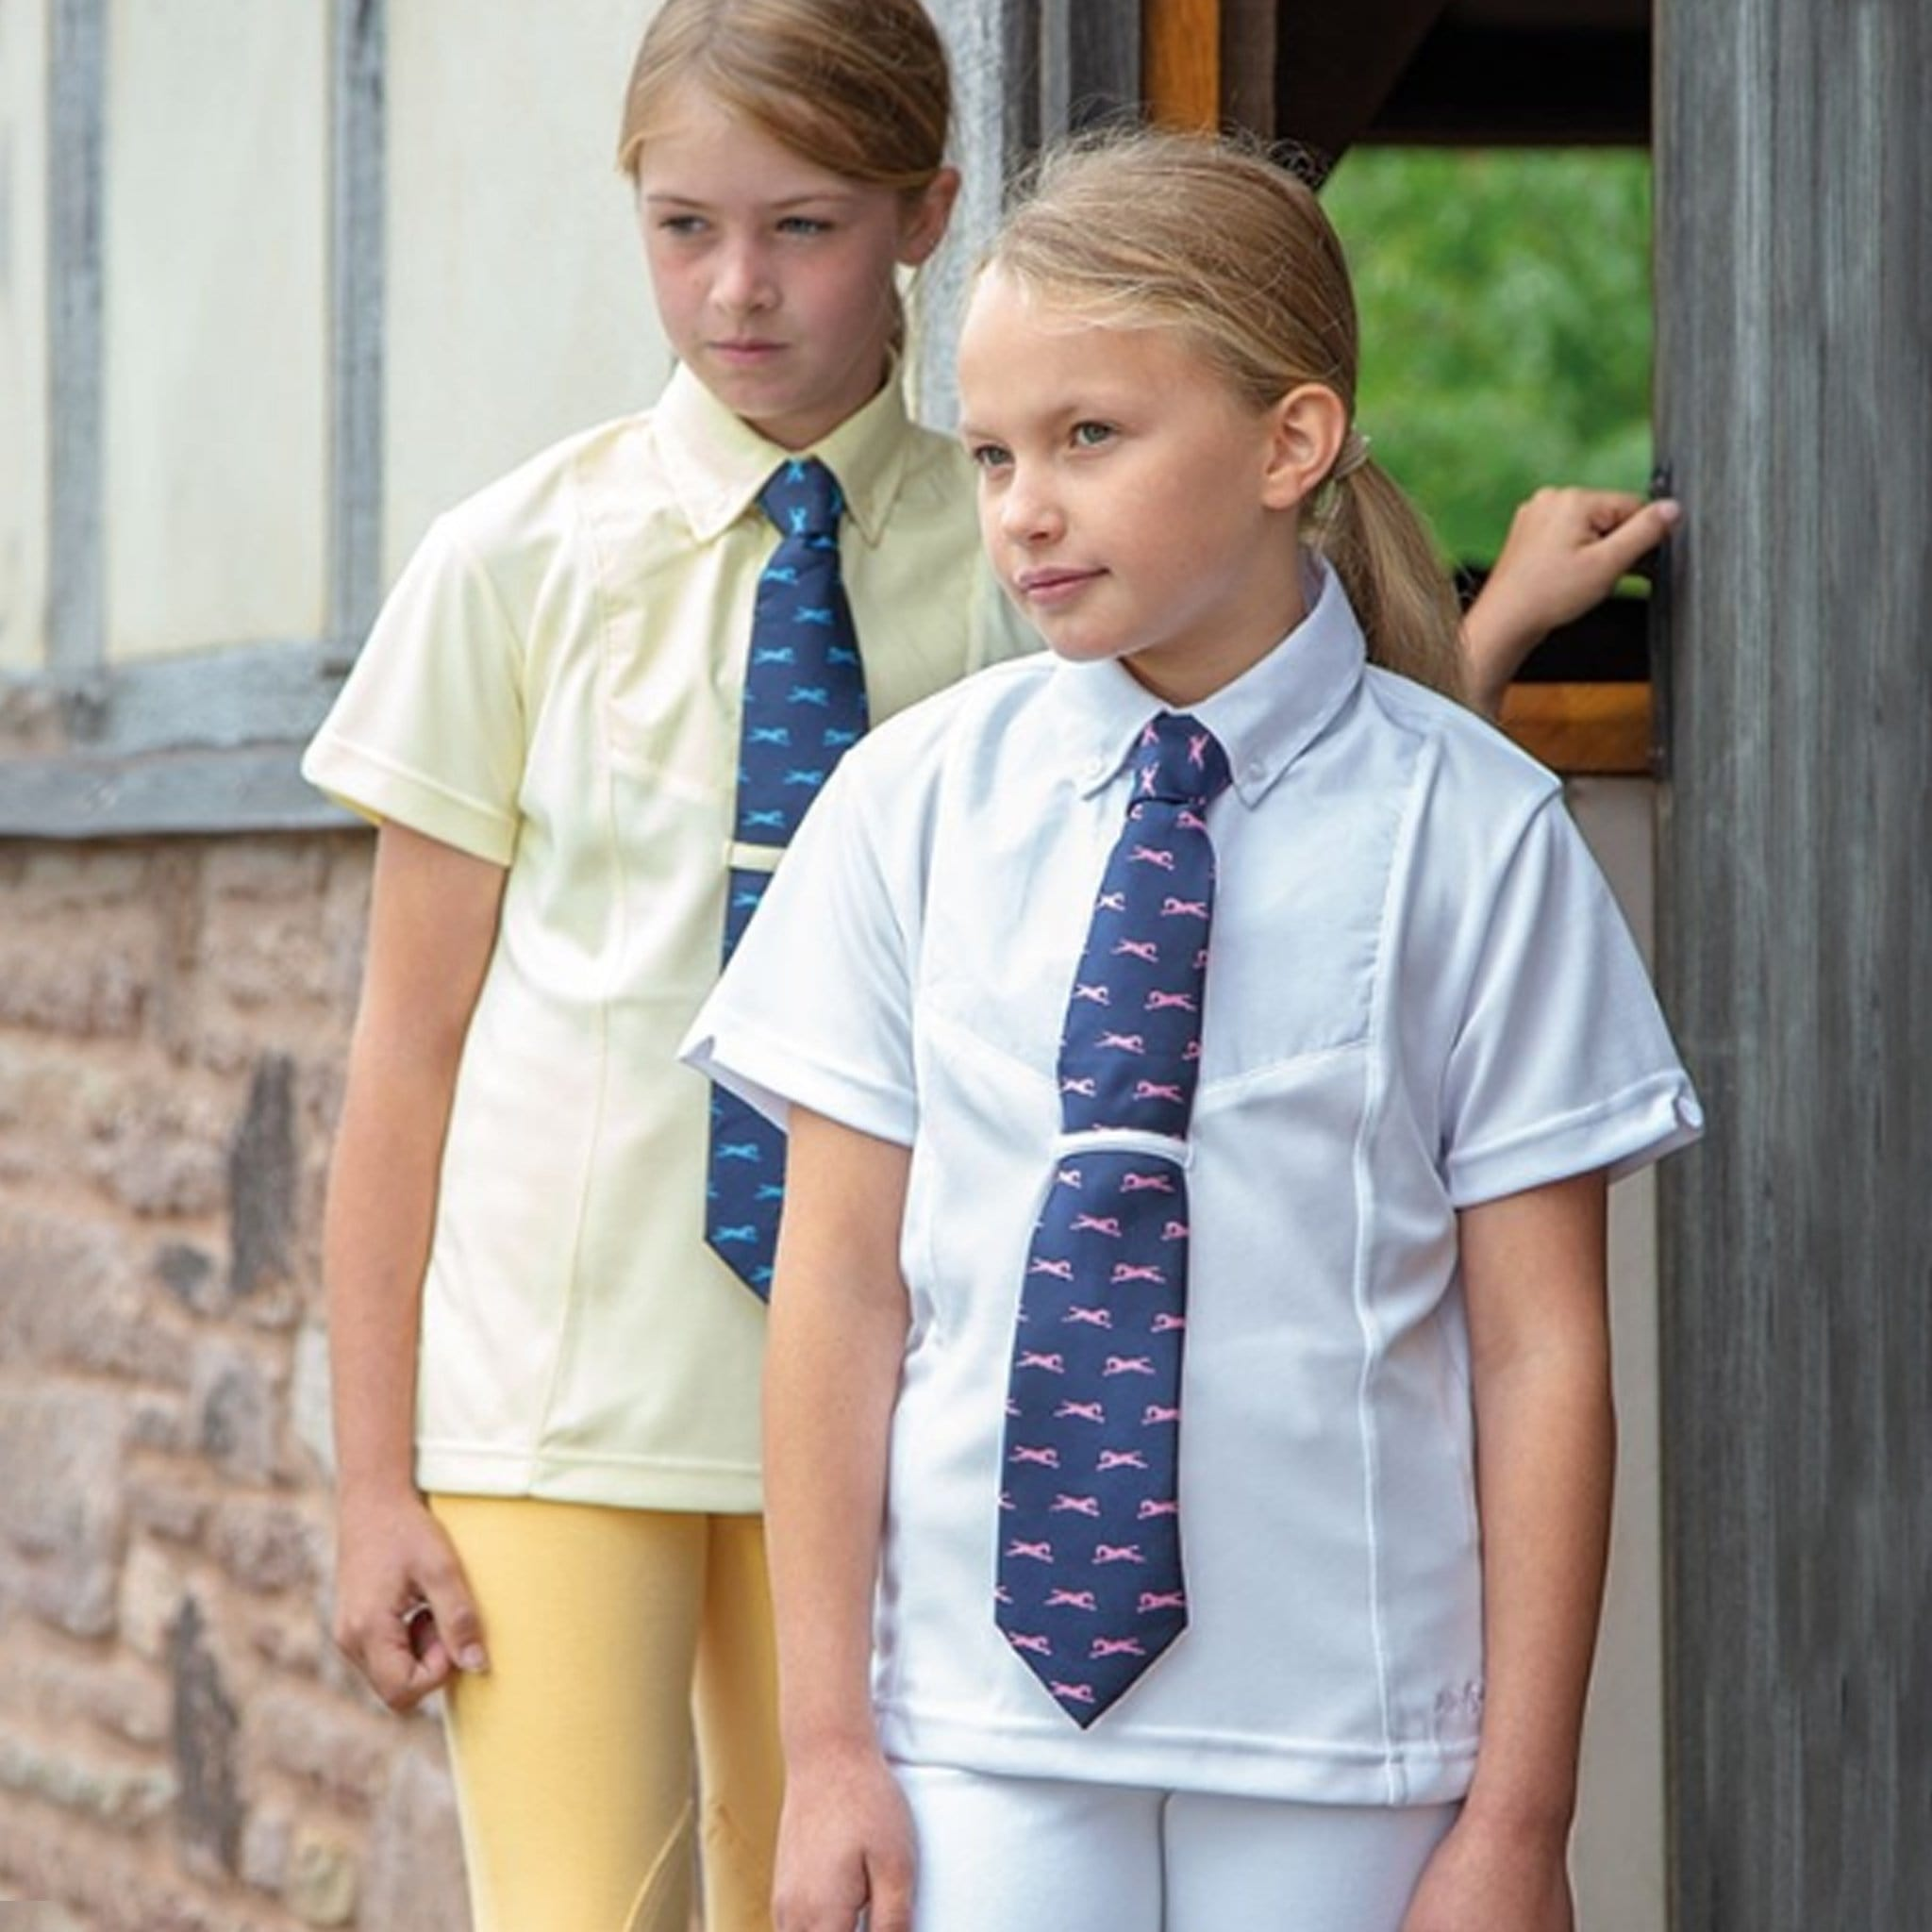 Shires Children's Aubrion Tie Short Sleeve Show Shirt White and Yellow on Models 9997